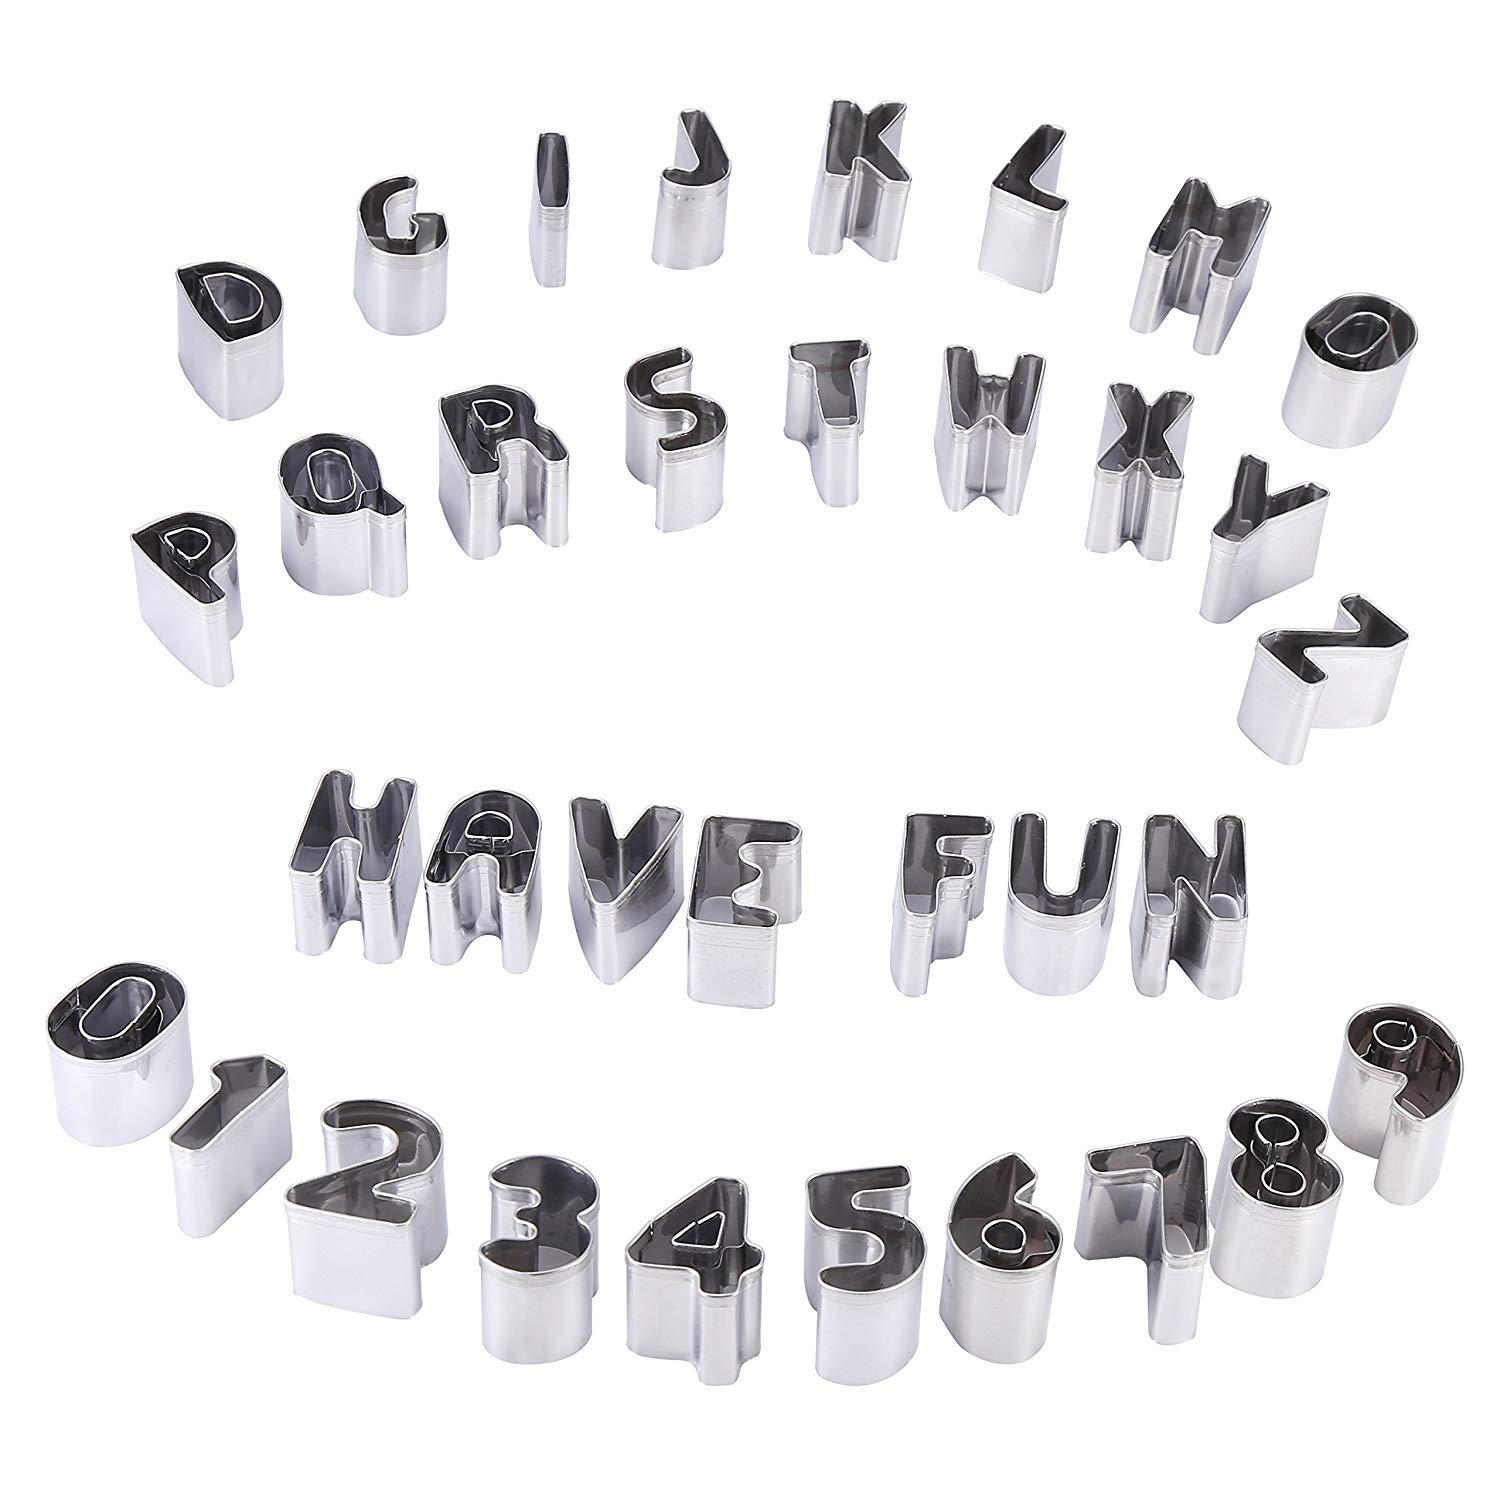 Mini Number Alphabet Cookie Cutters Set of 37 Pieces Stainless Steel Small Mold Tools for Fondant Biscuit, Cake, Fruit, Vegetables